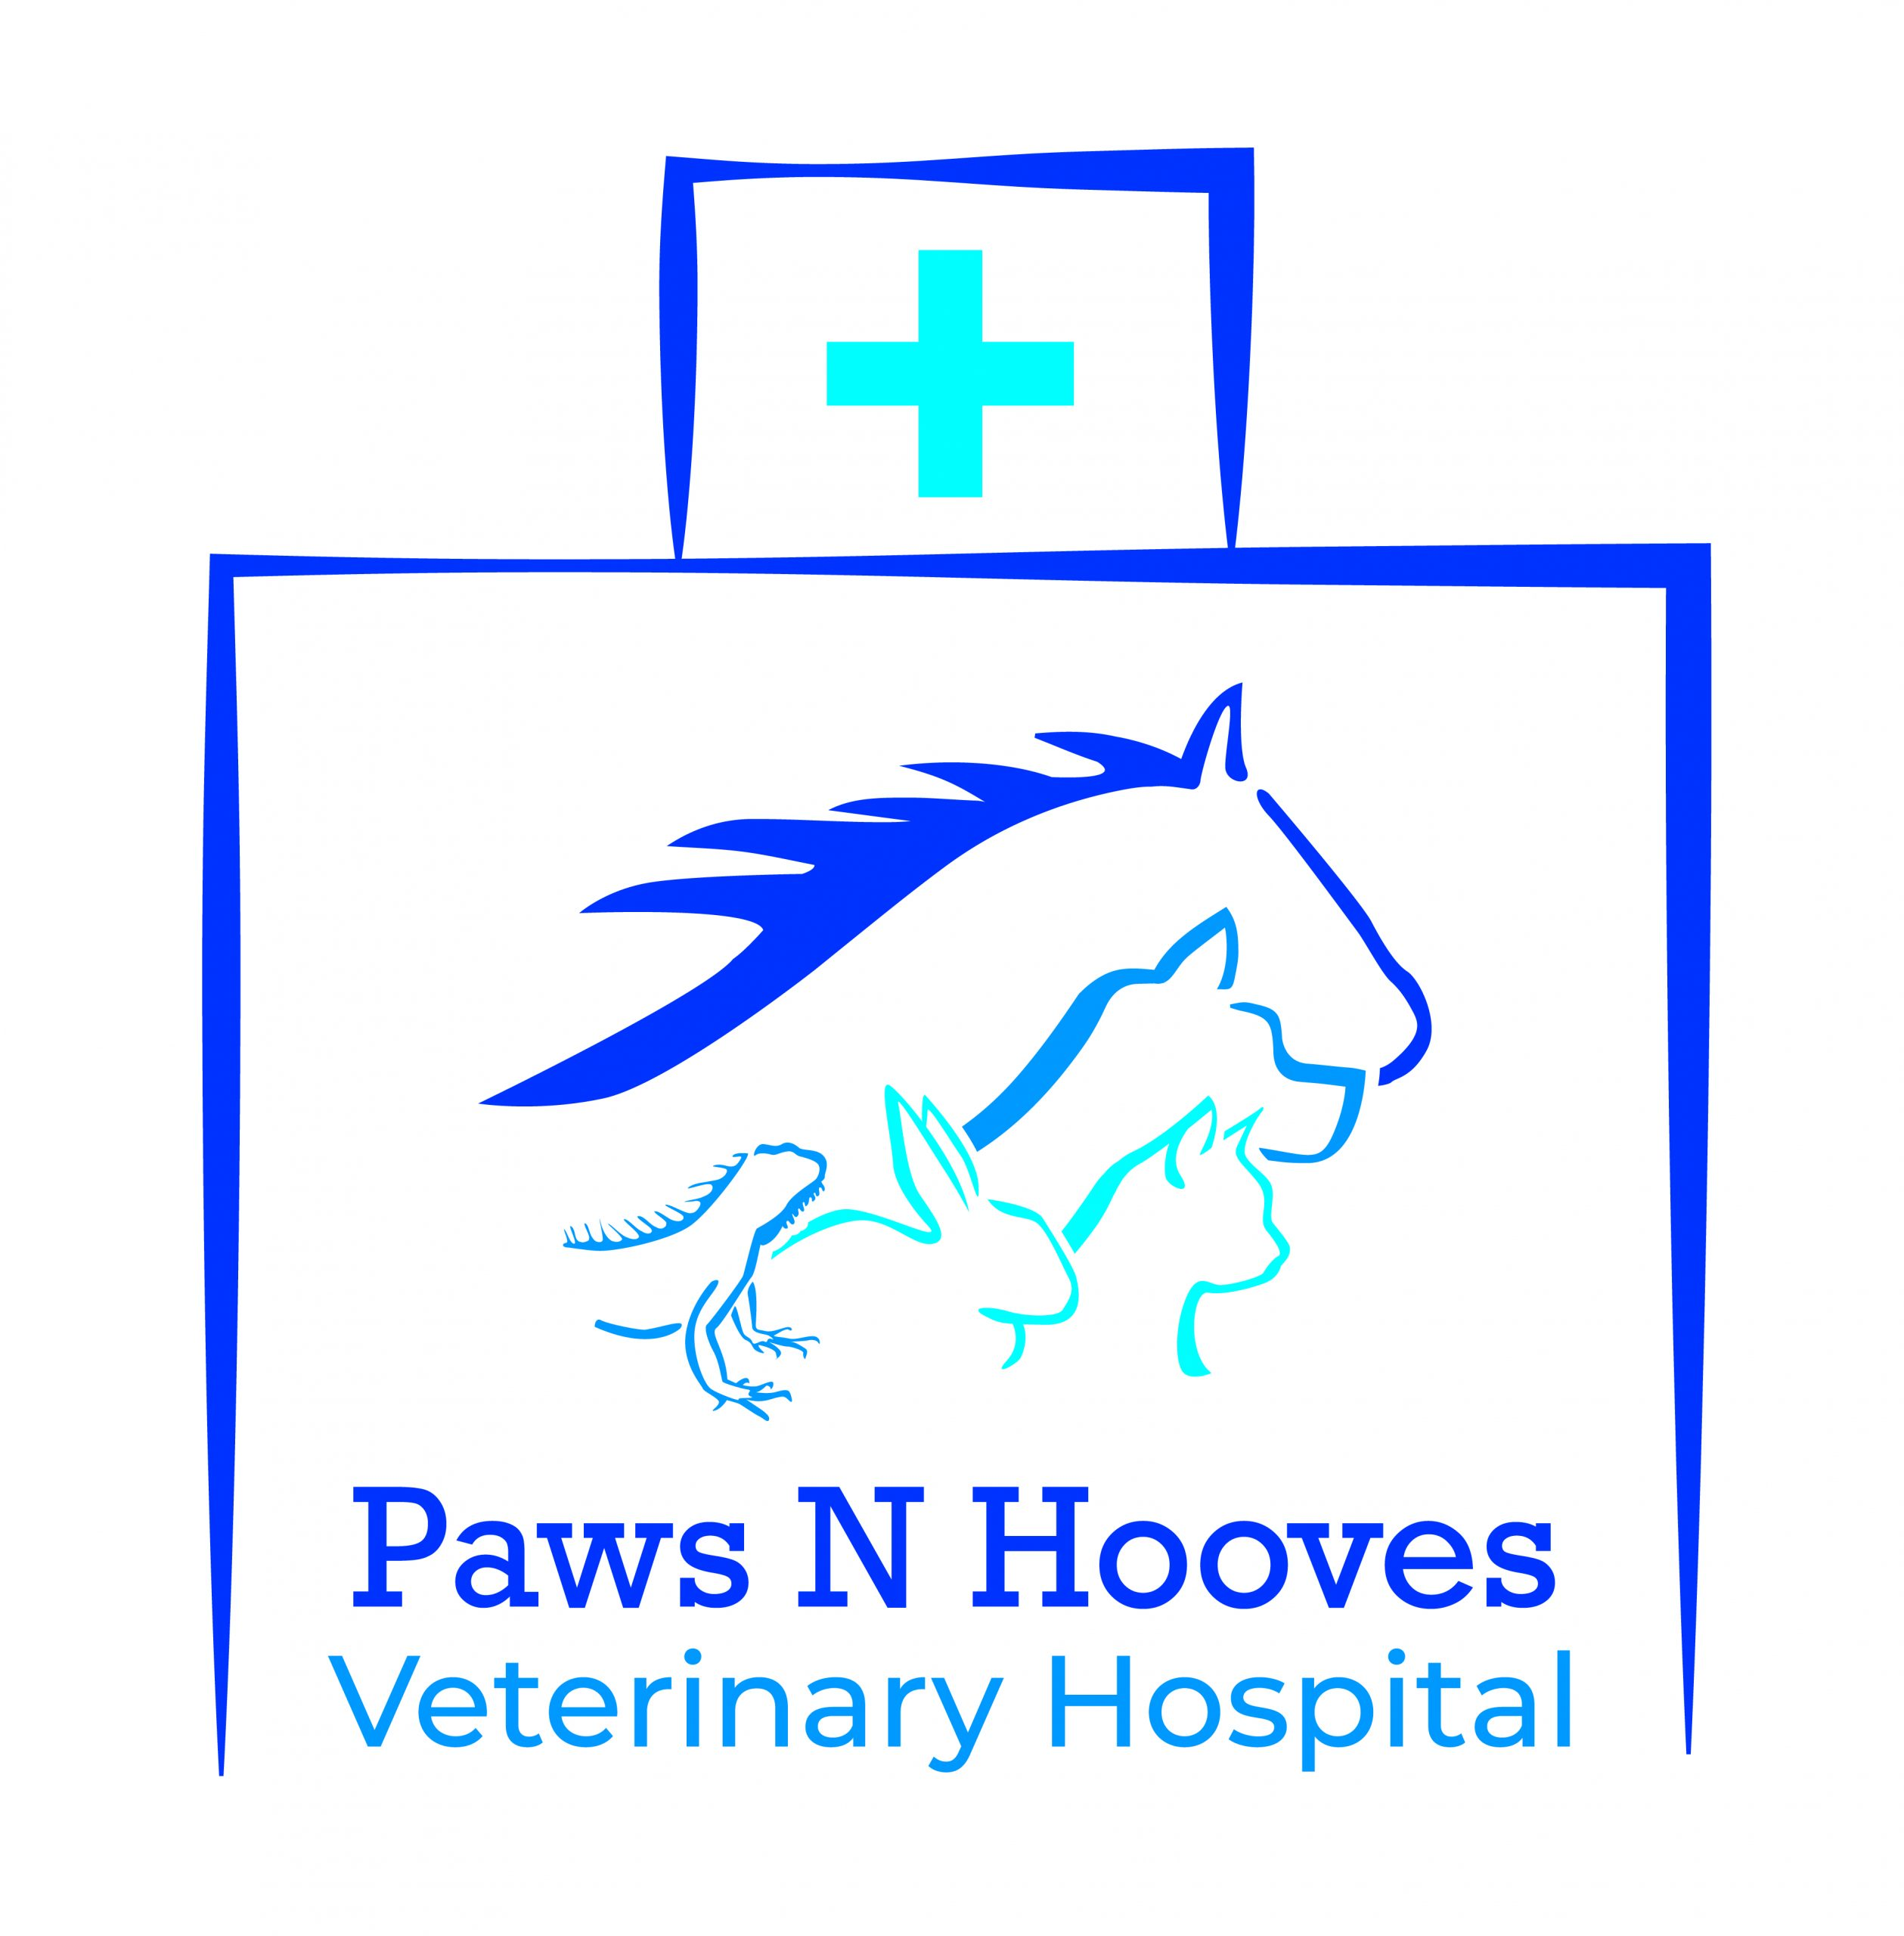 Paws N Hooves Veterinary Hospital